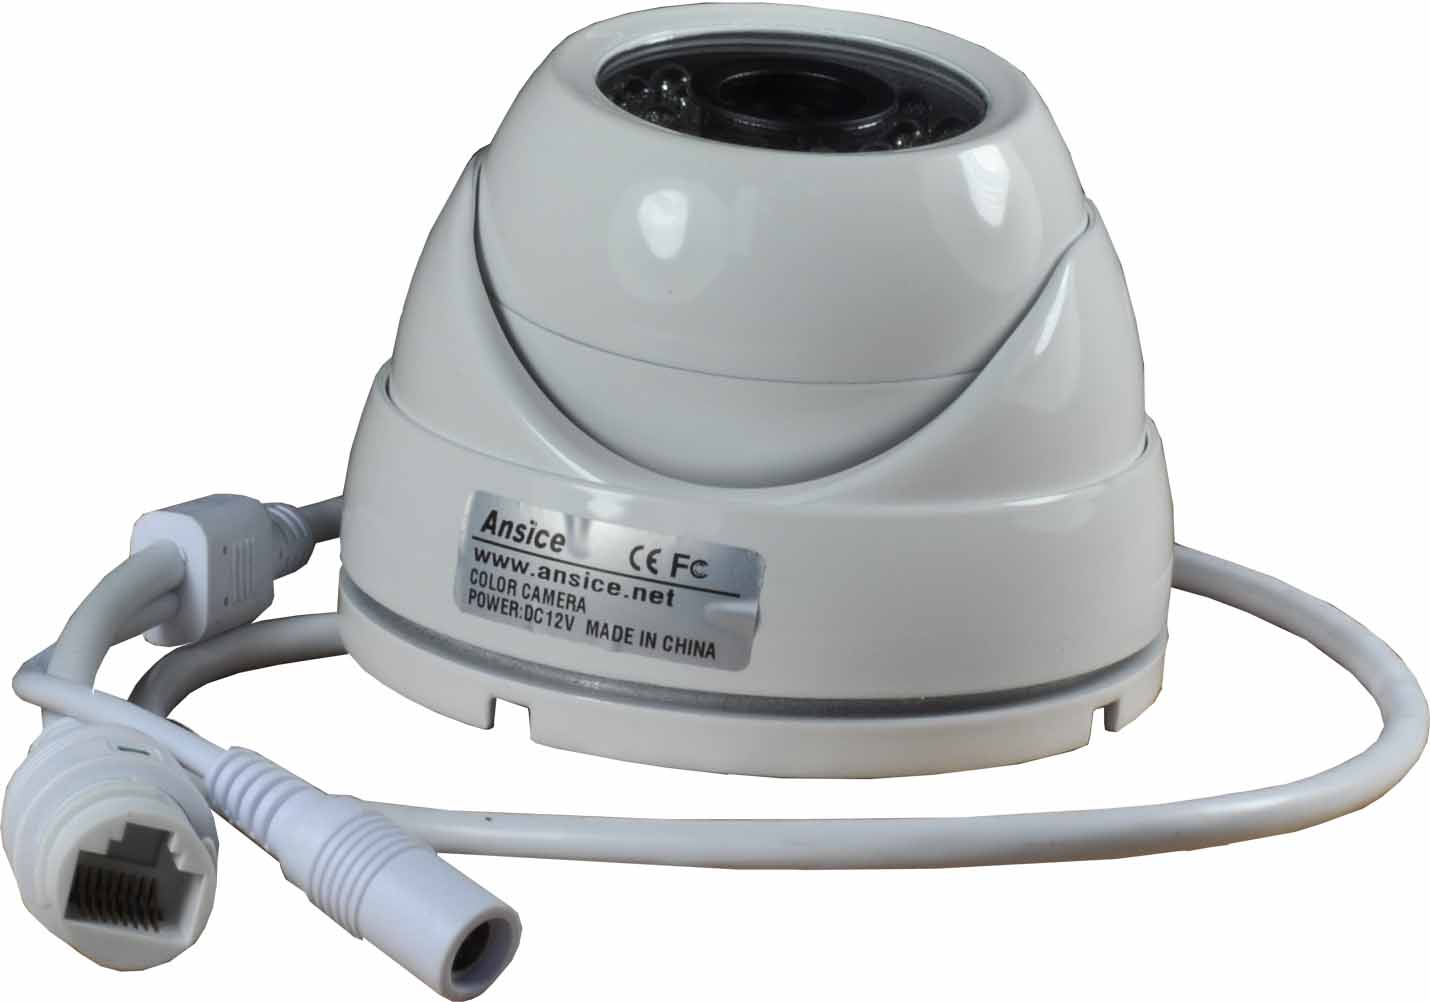 IP Camera 1080P 2MP IP CCTV Network Security Camera Commercial Use Onvif Engineering IPC for NVR